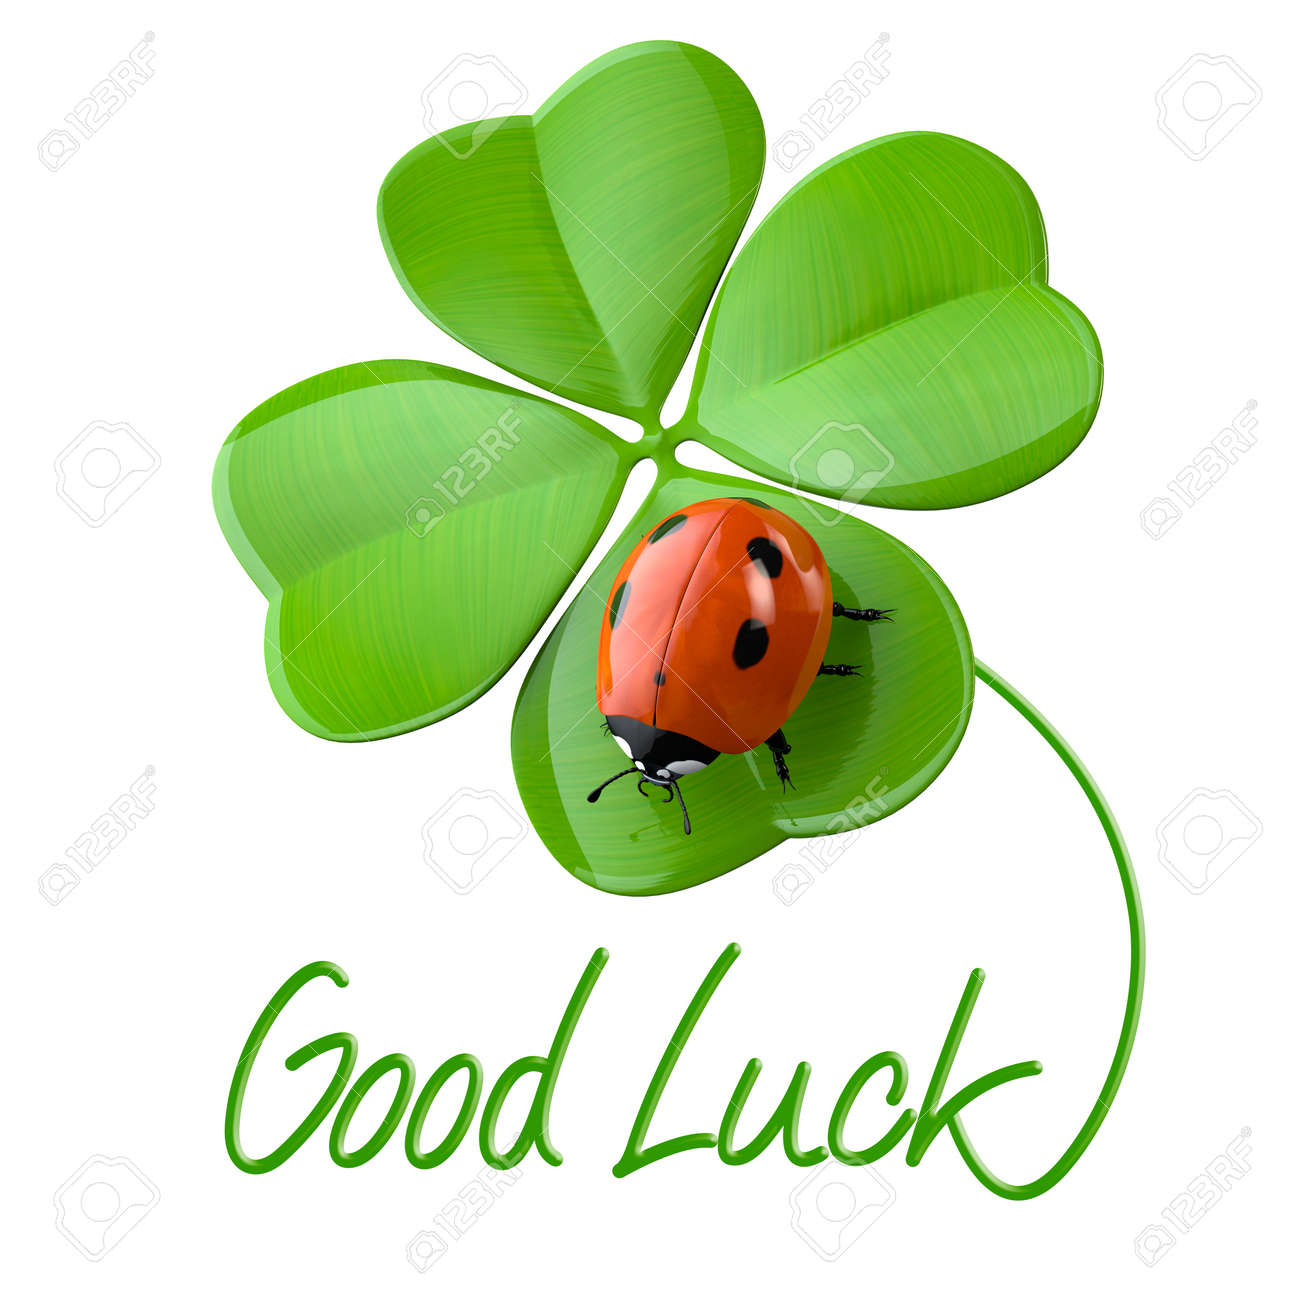 Uncategorized Lucky Symbol 1134 good luck charm stock illustrations cliparts and royalty lucky symbols four leaf clover ladybug